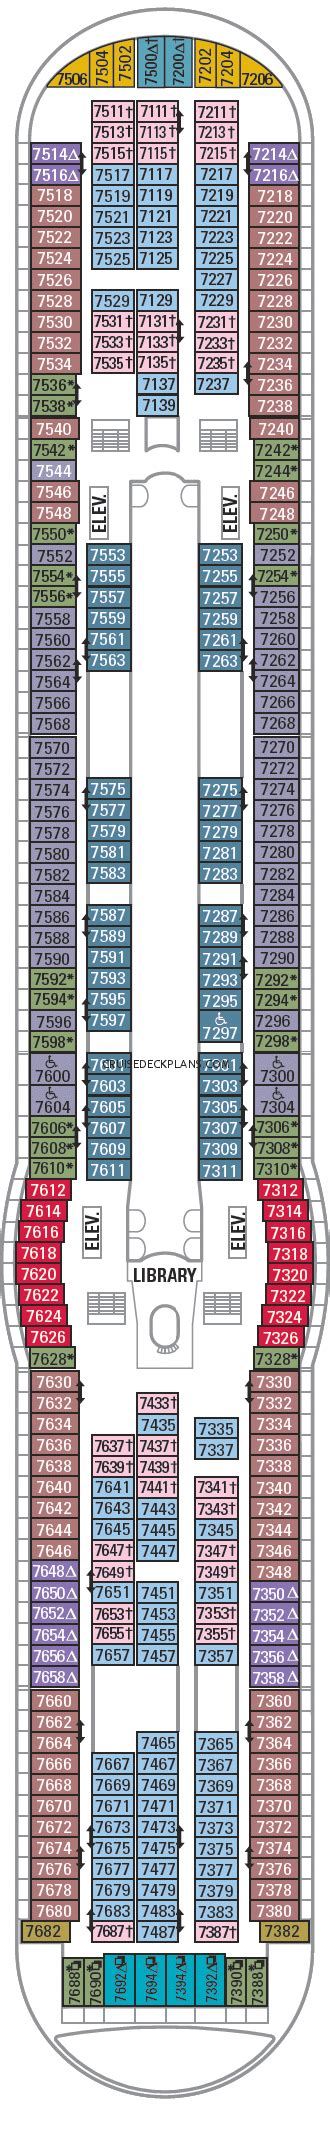 explorer of the seas floor plan explorer of the seas deck 7 deck plan tour